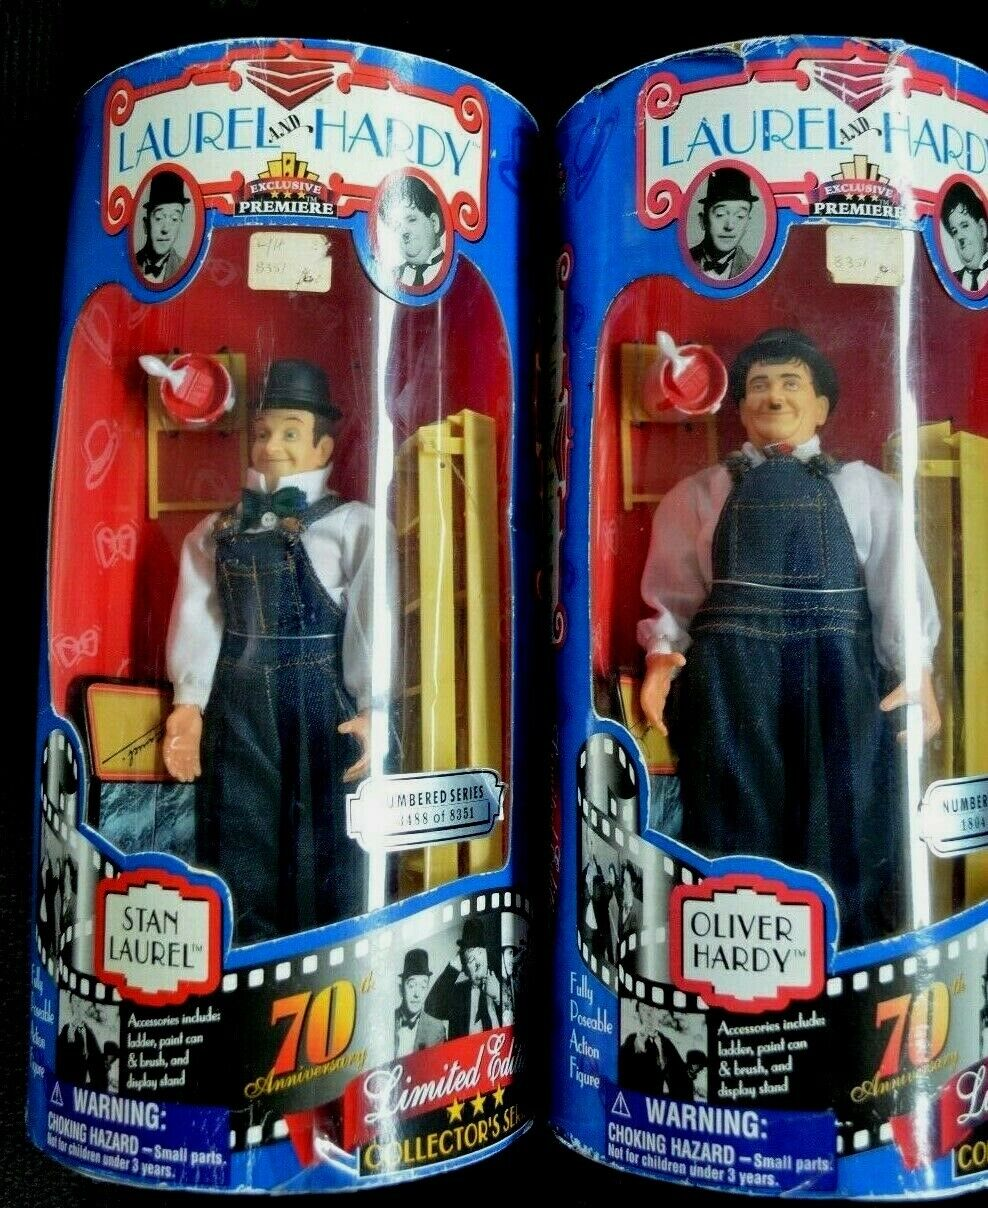 RARE -ICONIC  LAUREL AND HARDY ACTION FIGURE COLLECTORS SERIES - HARD TO FIND